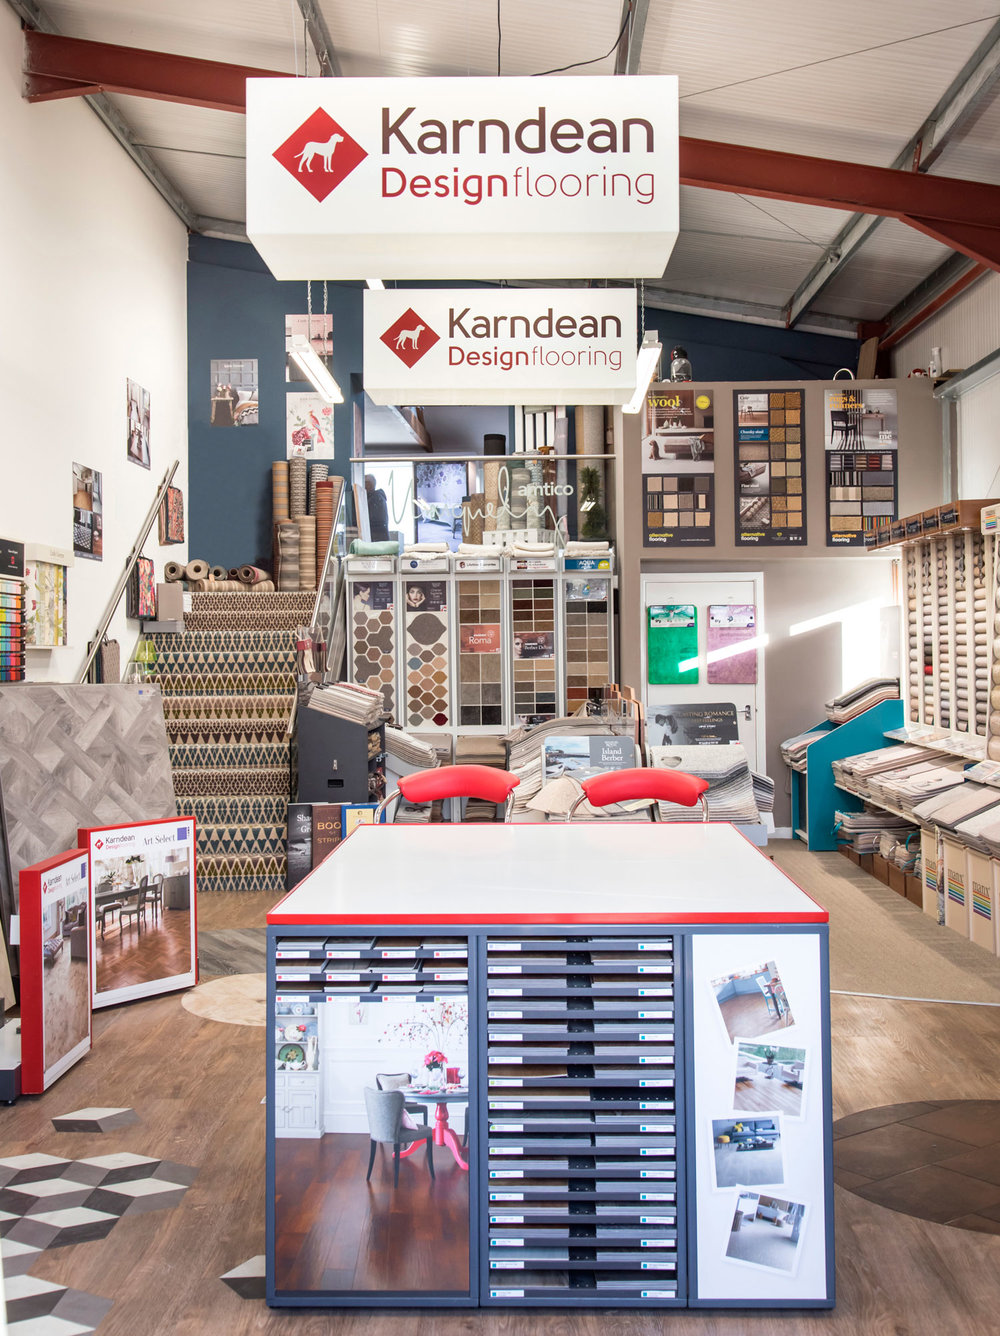 Platinum Retailer - Whether you're after a simple stone effect or a sophisticated wood pattern, Karndean has thousands of combinations of styles, colours, tones, textures, and decoration for you to choose from.